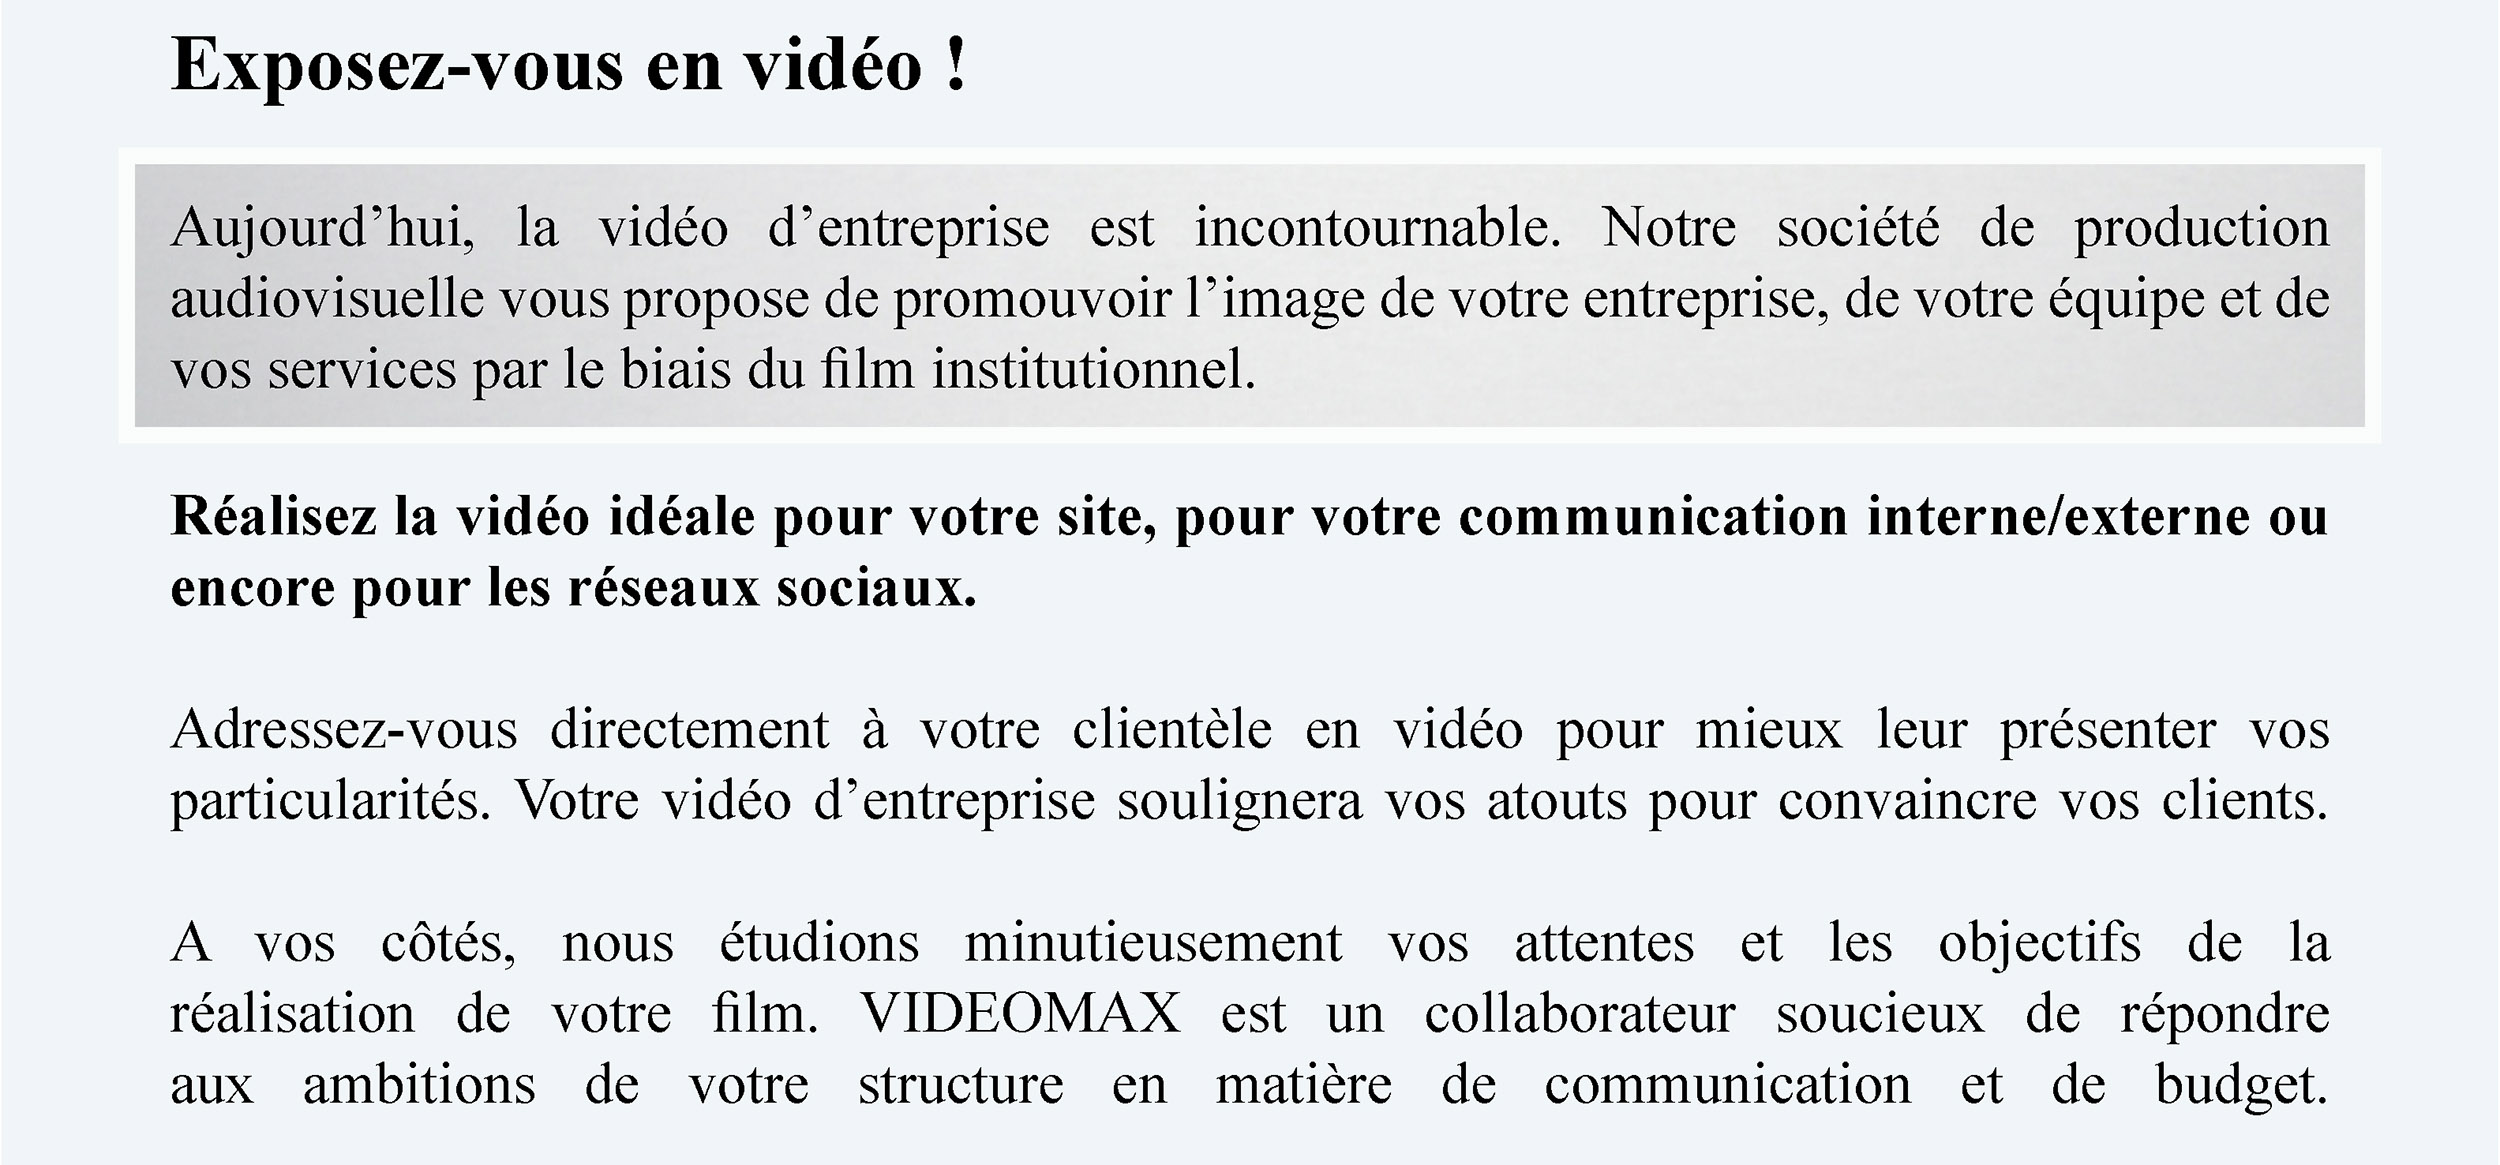 Film institutionnel